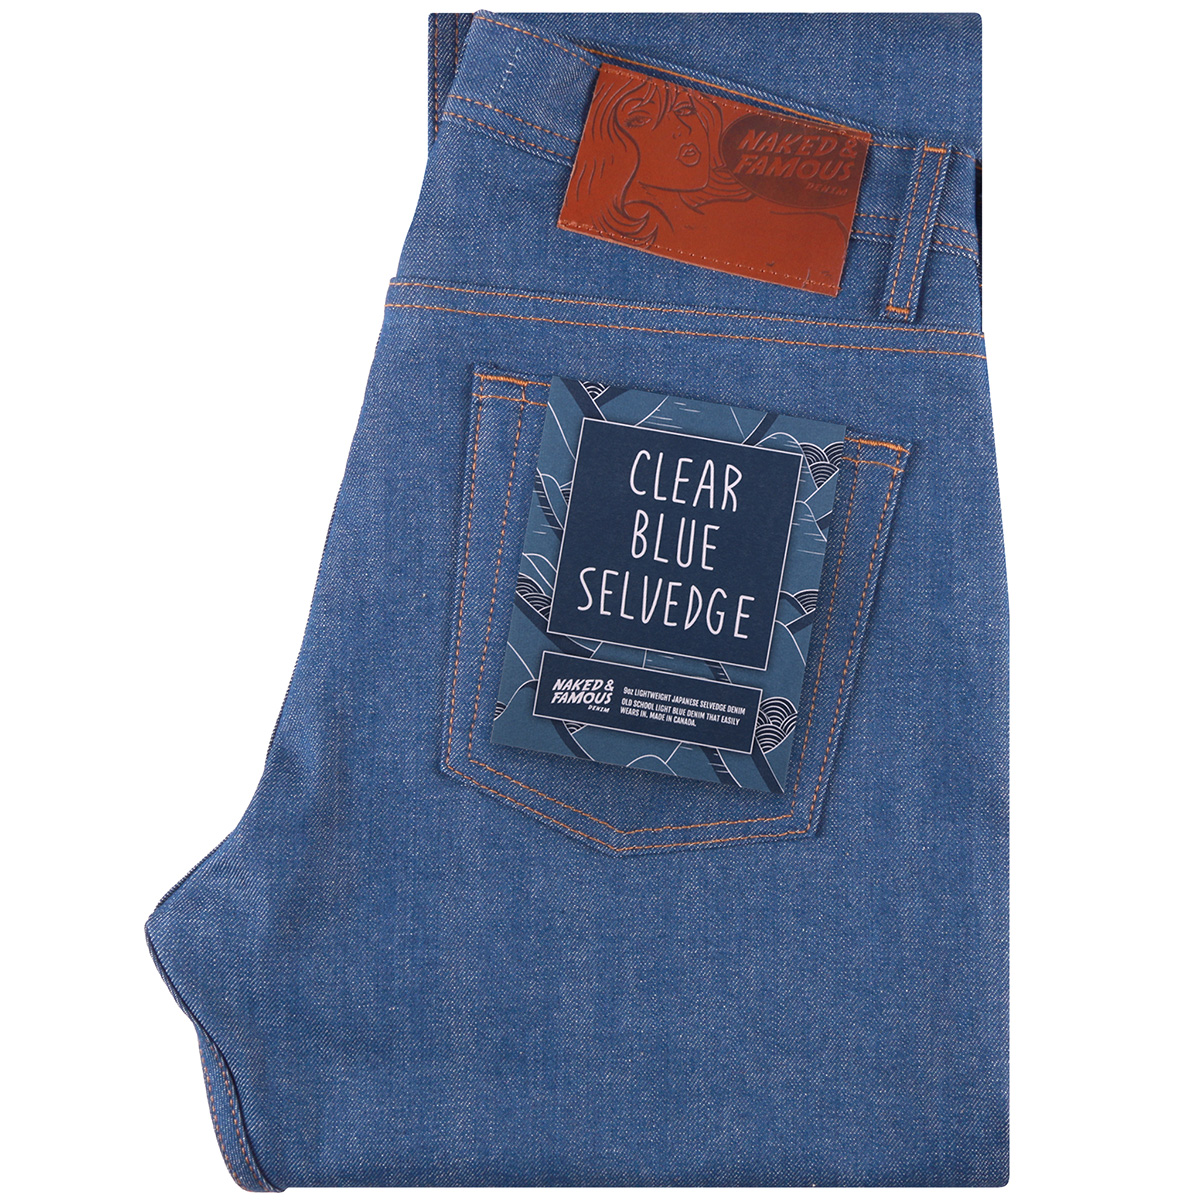 CLEAR BLUE SELVEDGE - Super Guy / Weird Guy / Easy Guy / Strong Guy